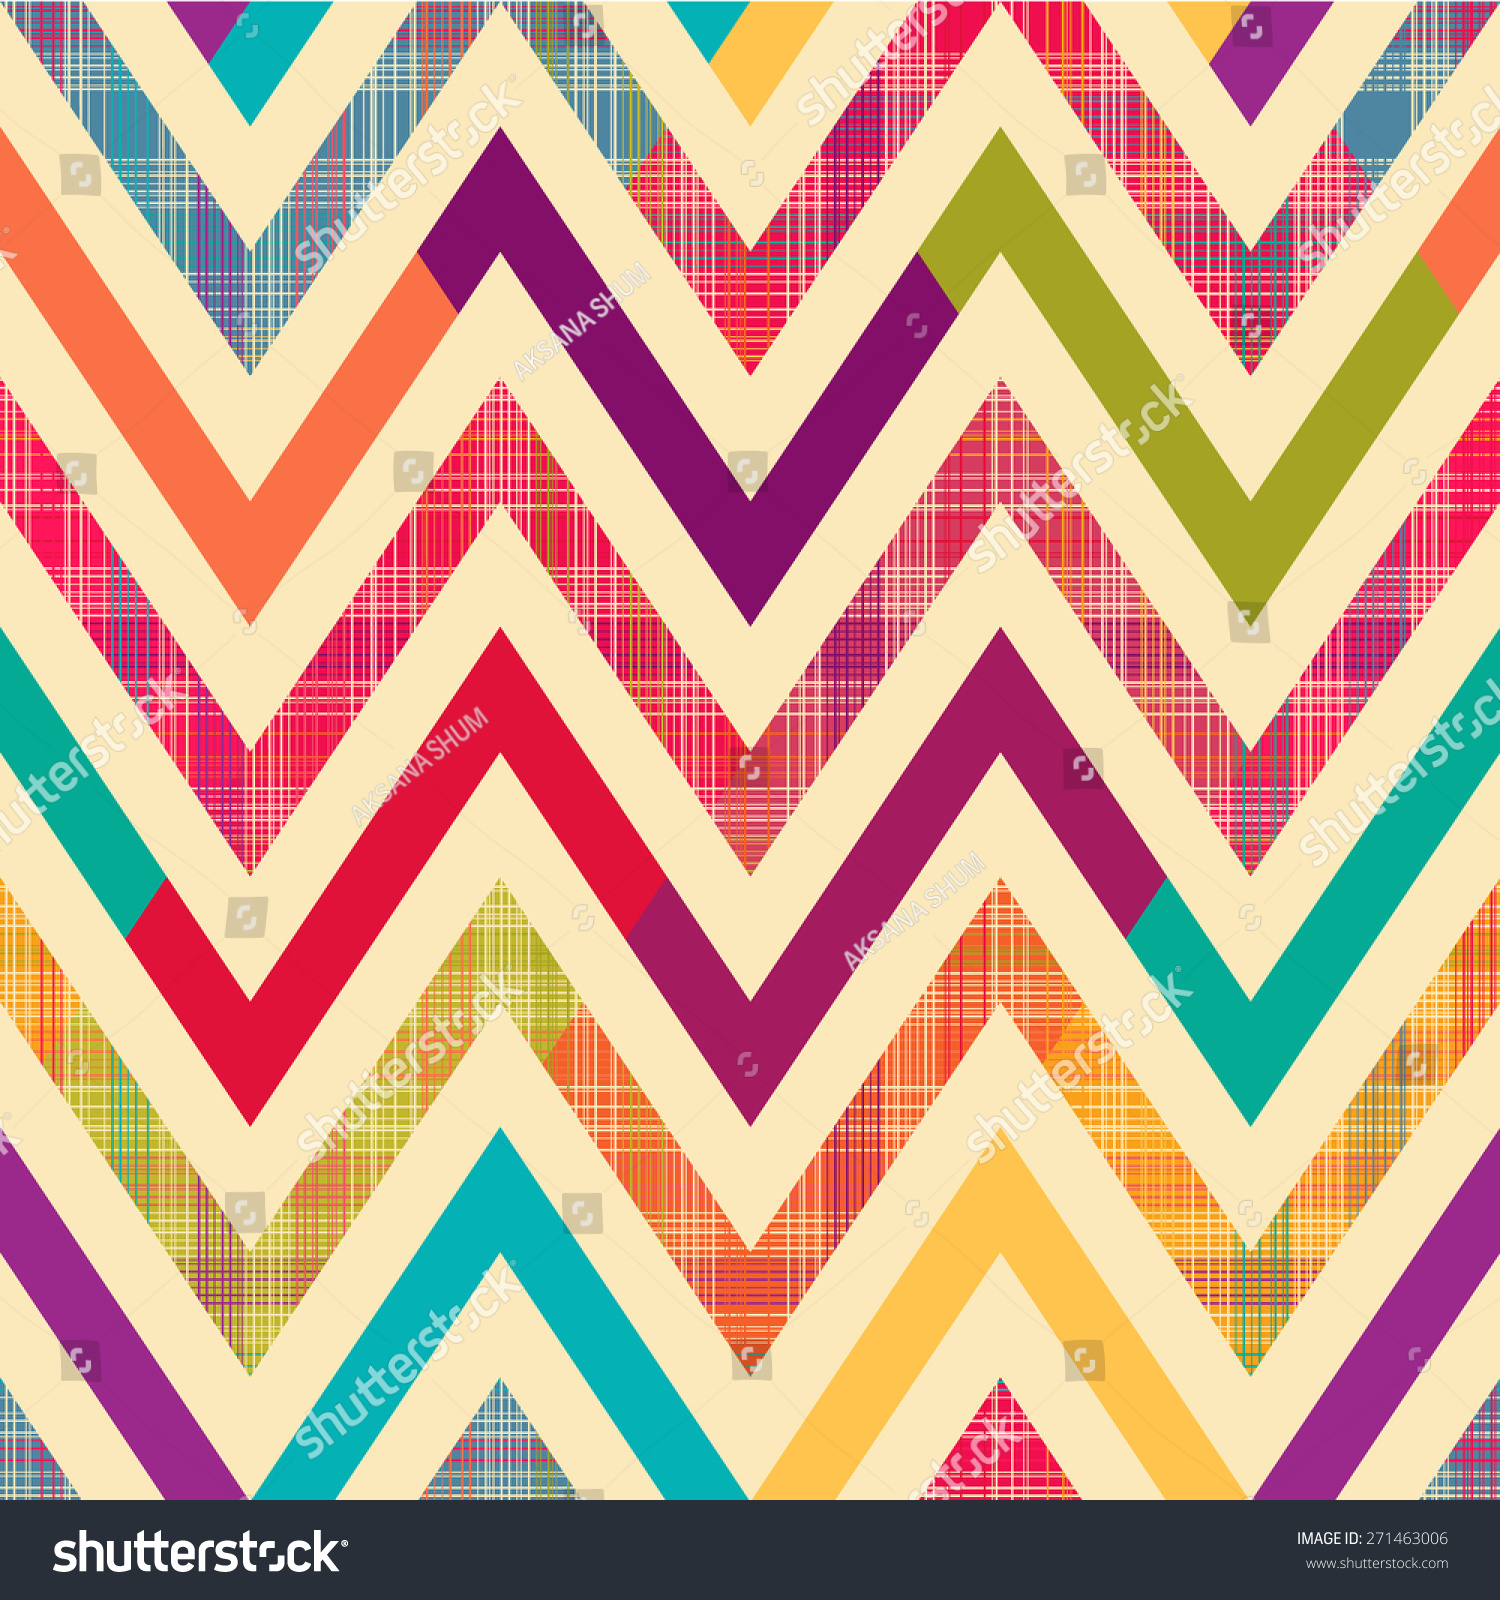 how to make a chevron template - seamless bright chevron pattern background vectores en